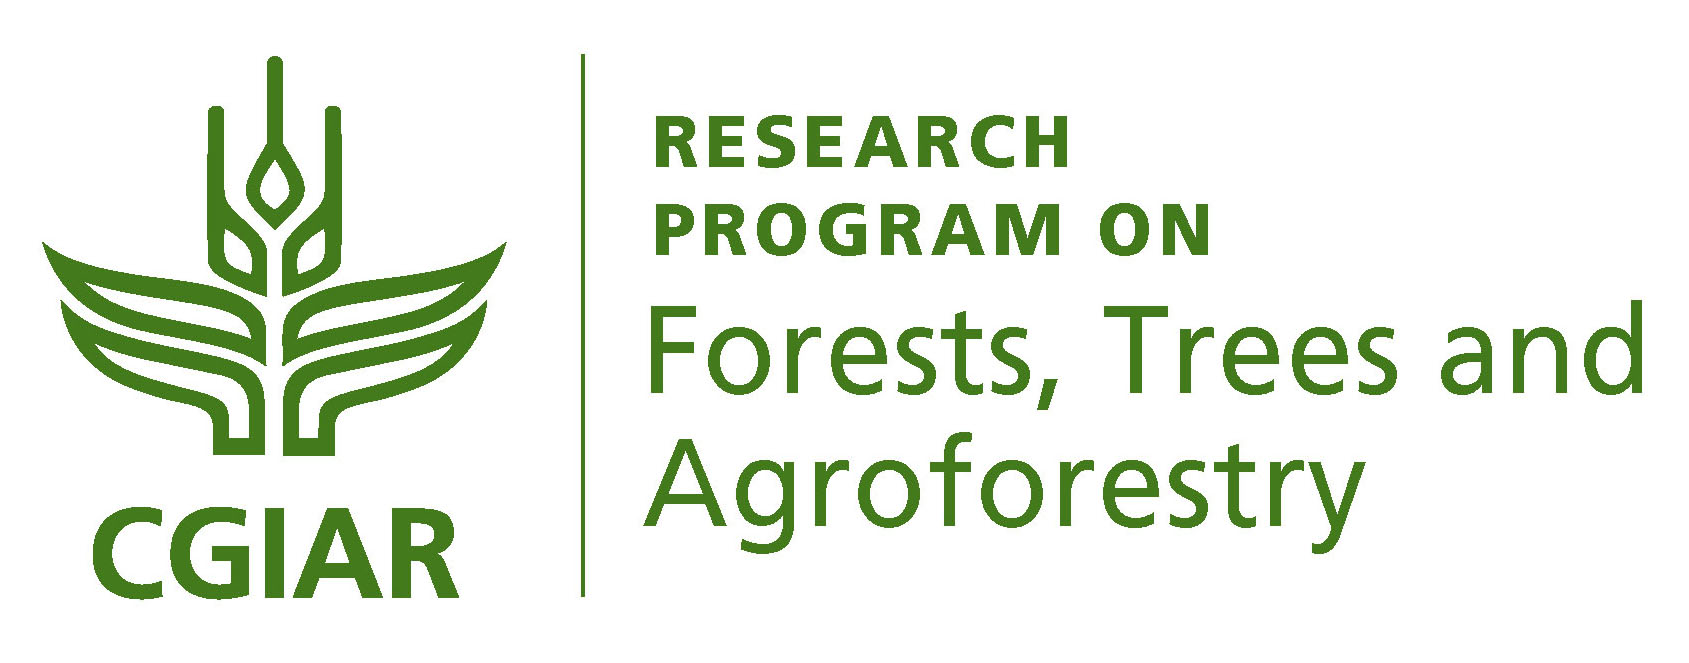 a description of agroforestry as social forestry on the purpose of sustainable development Agroforestry tree products (aftps): targeting poverty reduction social equity and environmental developed in support of this sustainable rural develop.